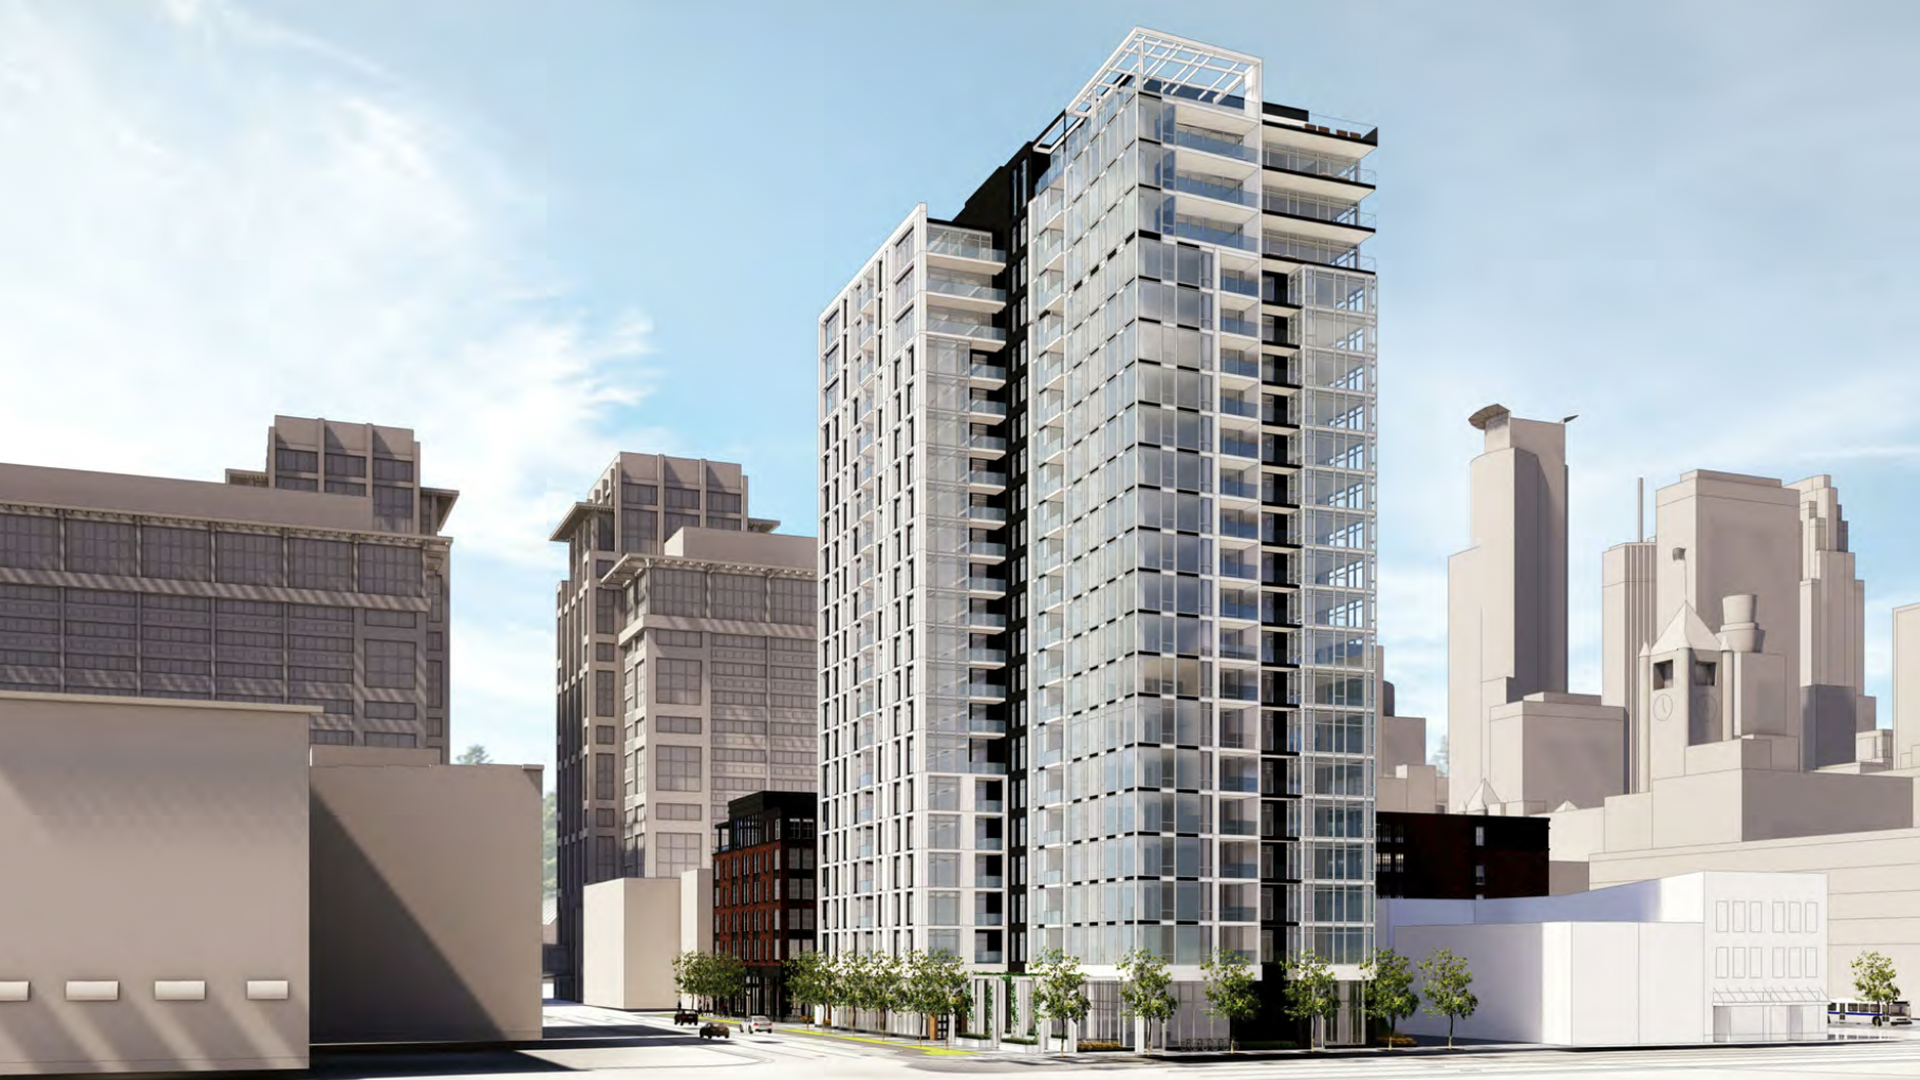 Rendering of a mixed-use complex in downtown Minneapolis.